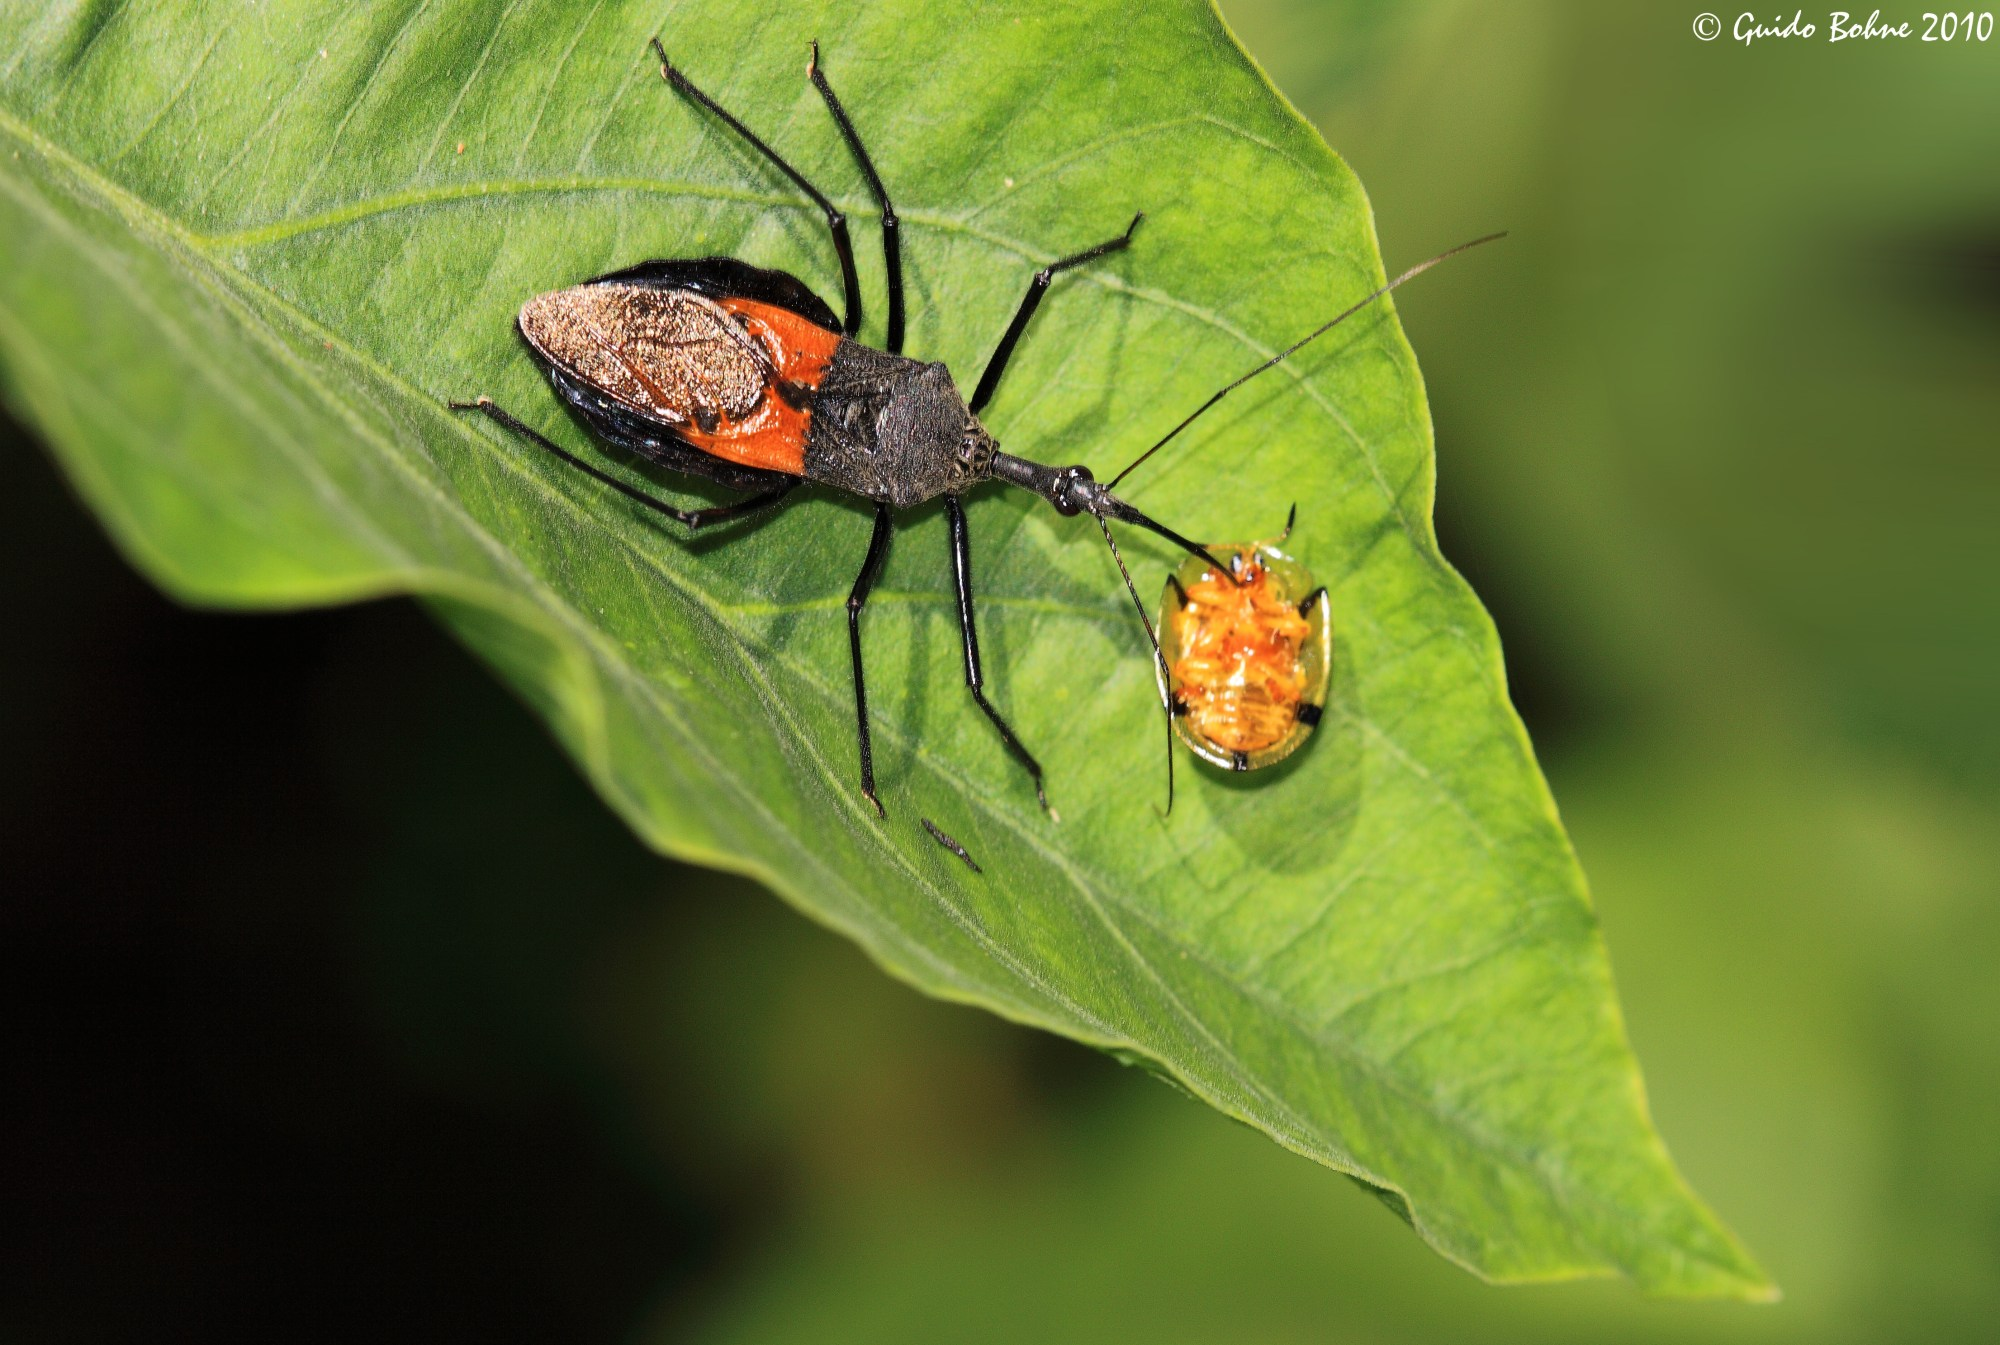 hight resolution of assassin bug exhausts a tortoise beetle 5070517021